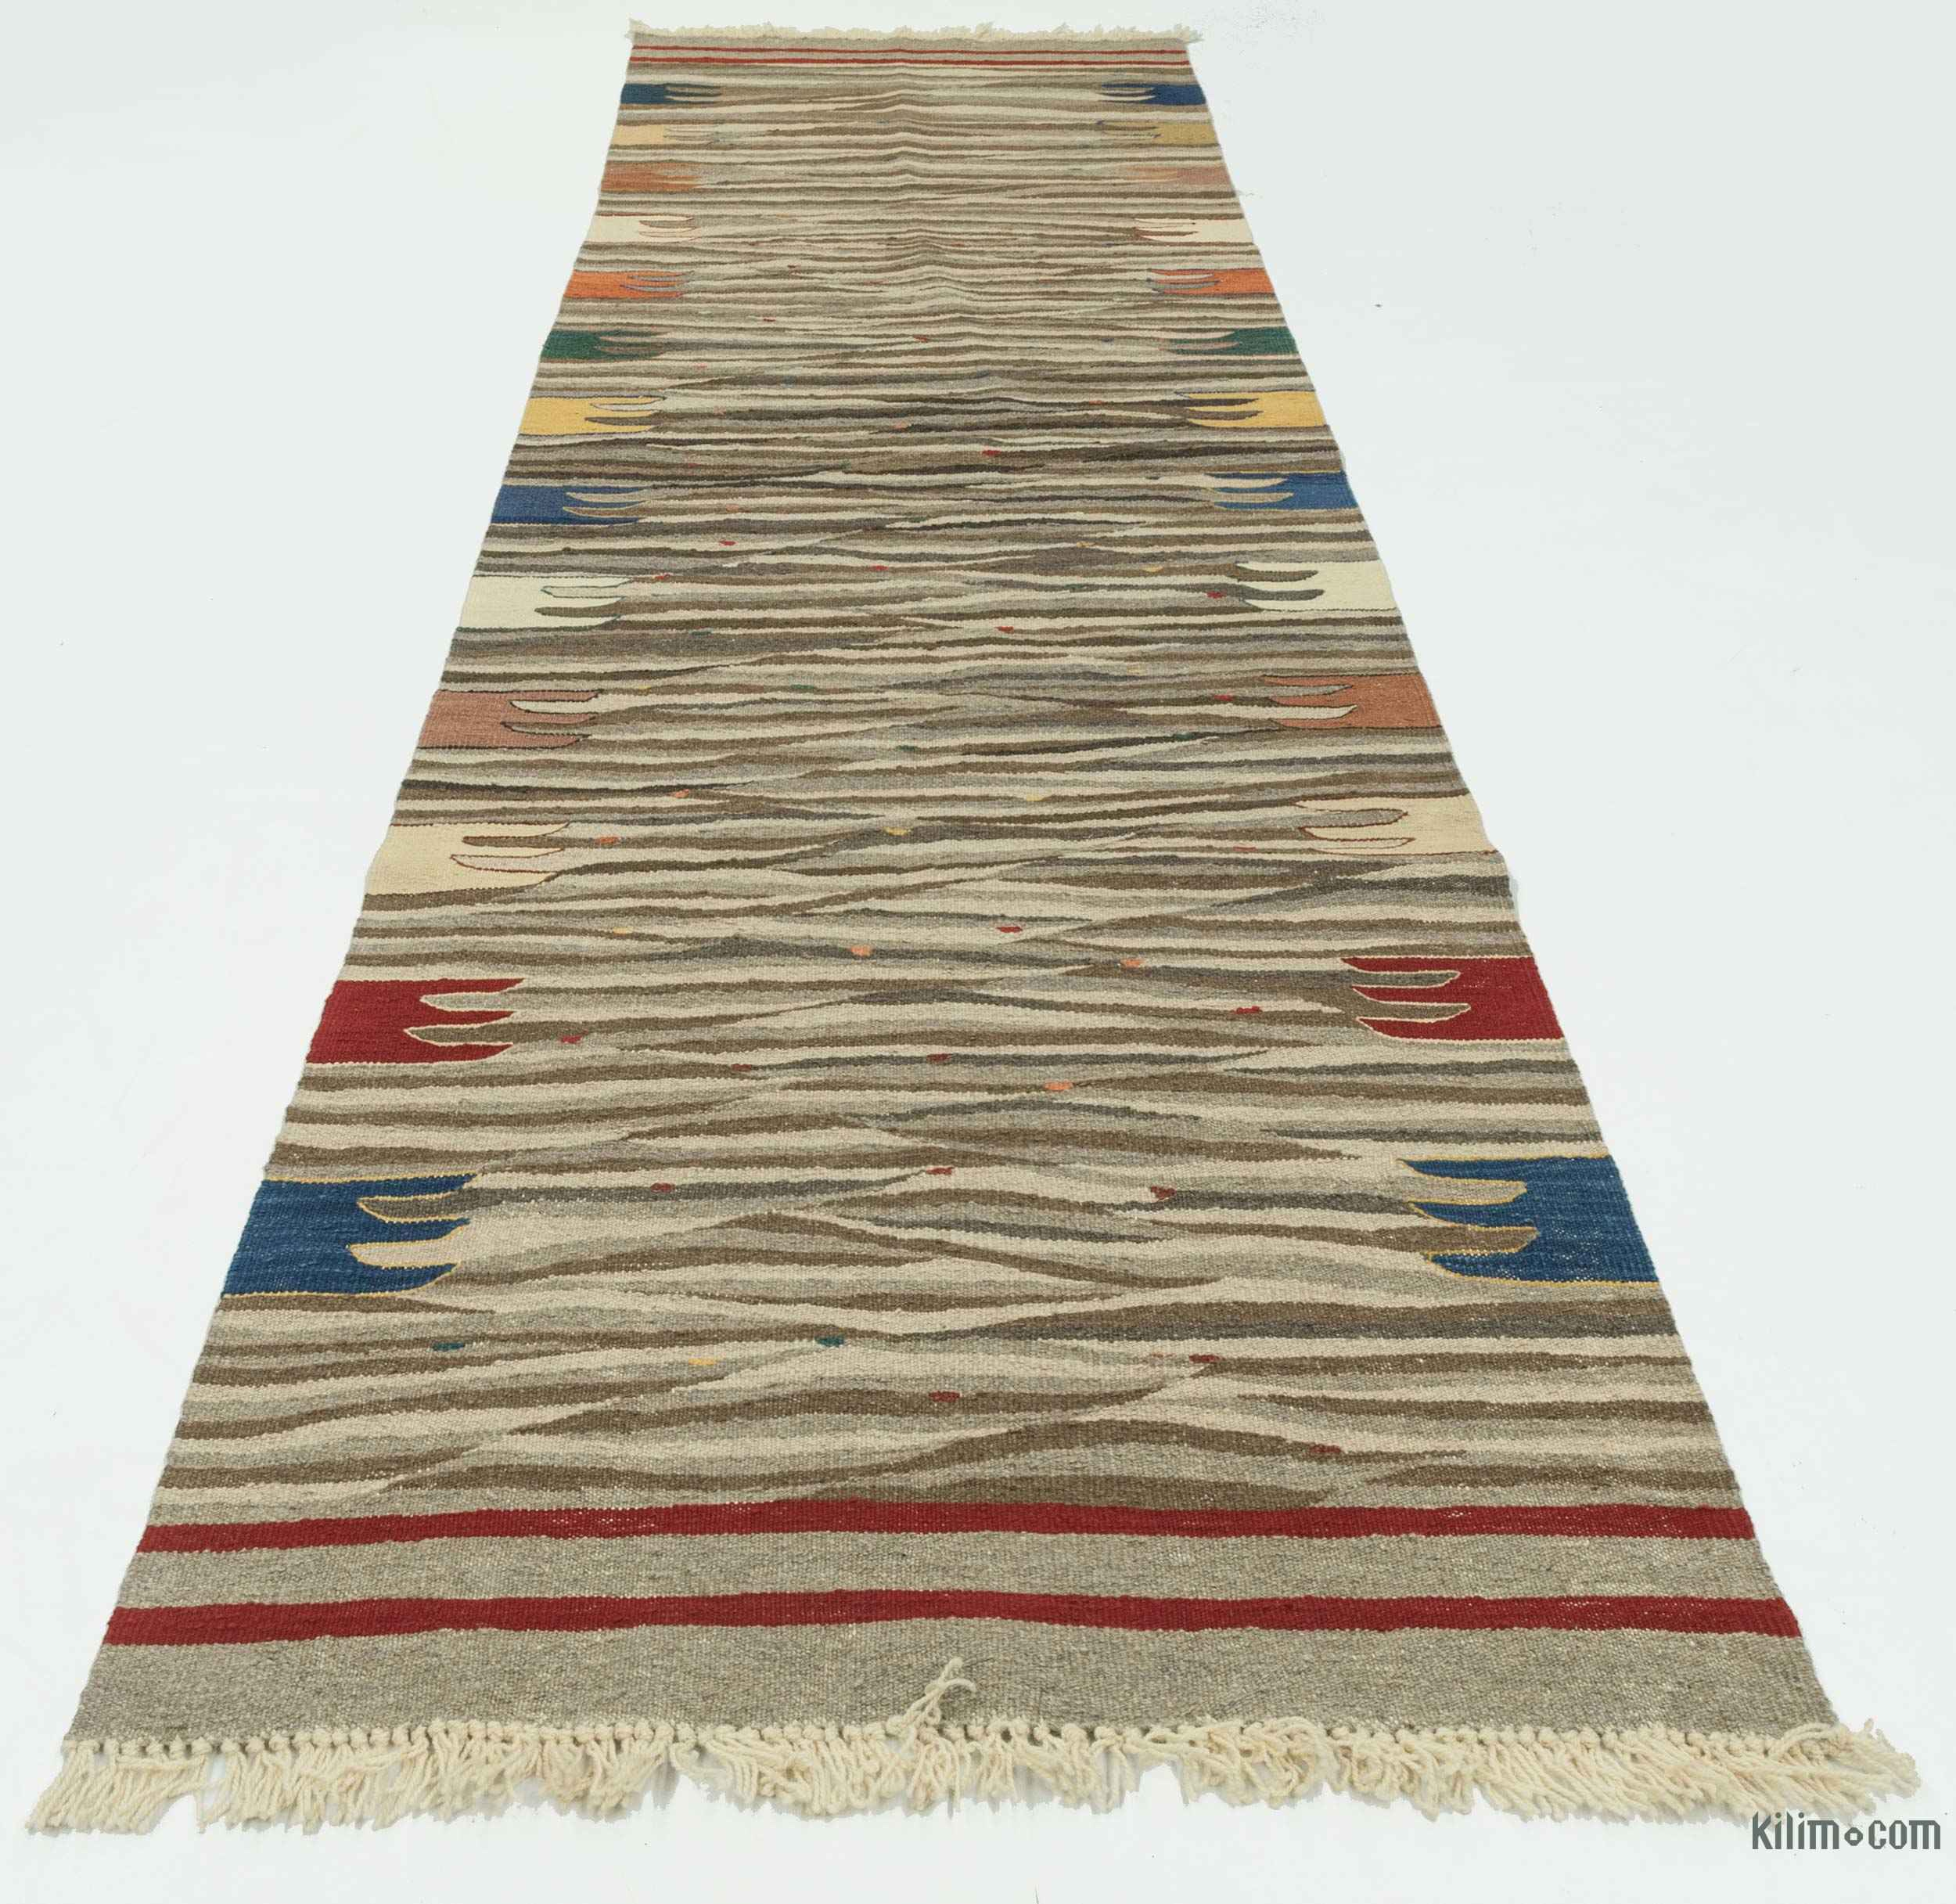 K0020777 Brown, Beige New Turkish Kilim Rug